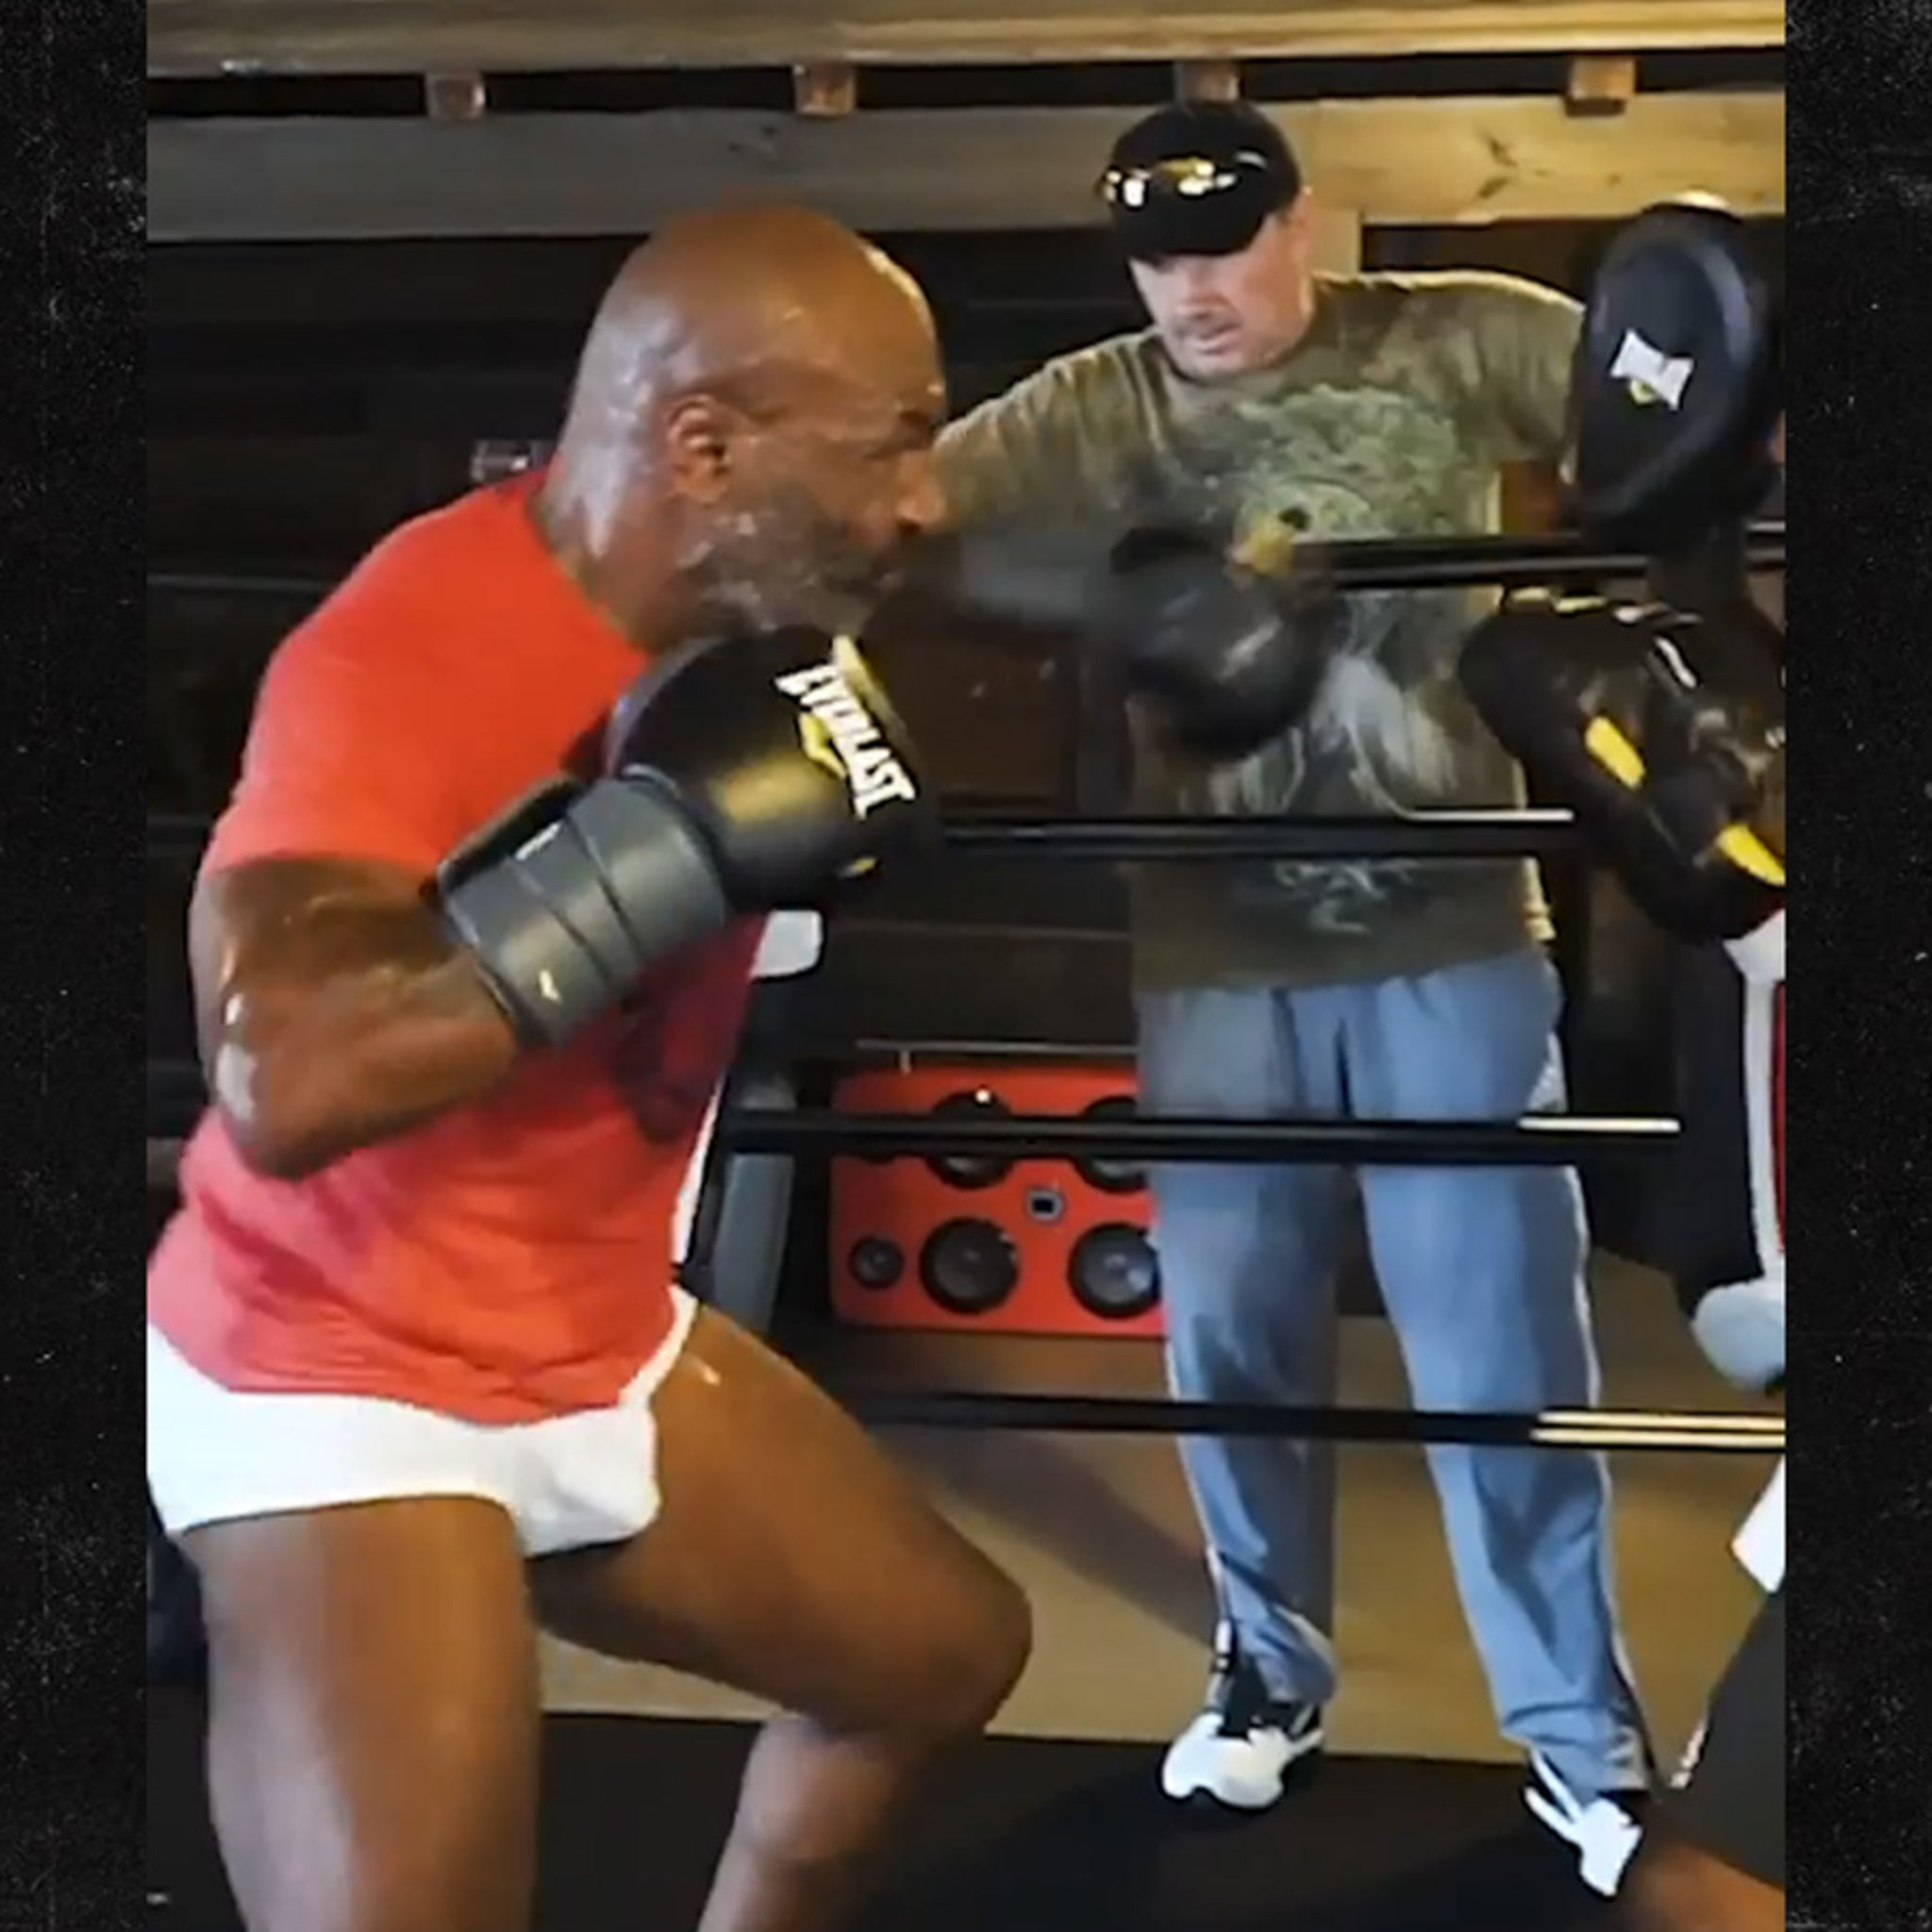 Mike Tyson Drops Scary New Boxing Training Video Bob Weave Destroy